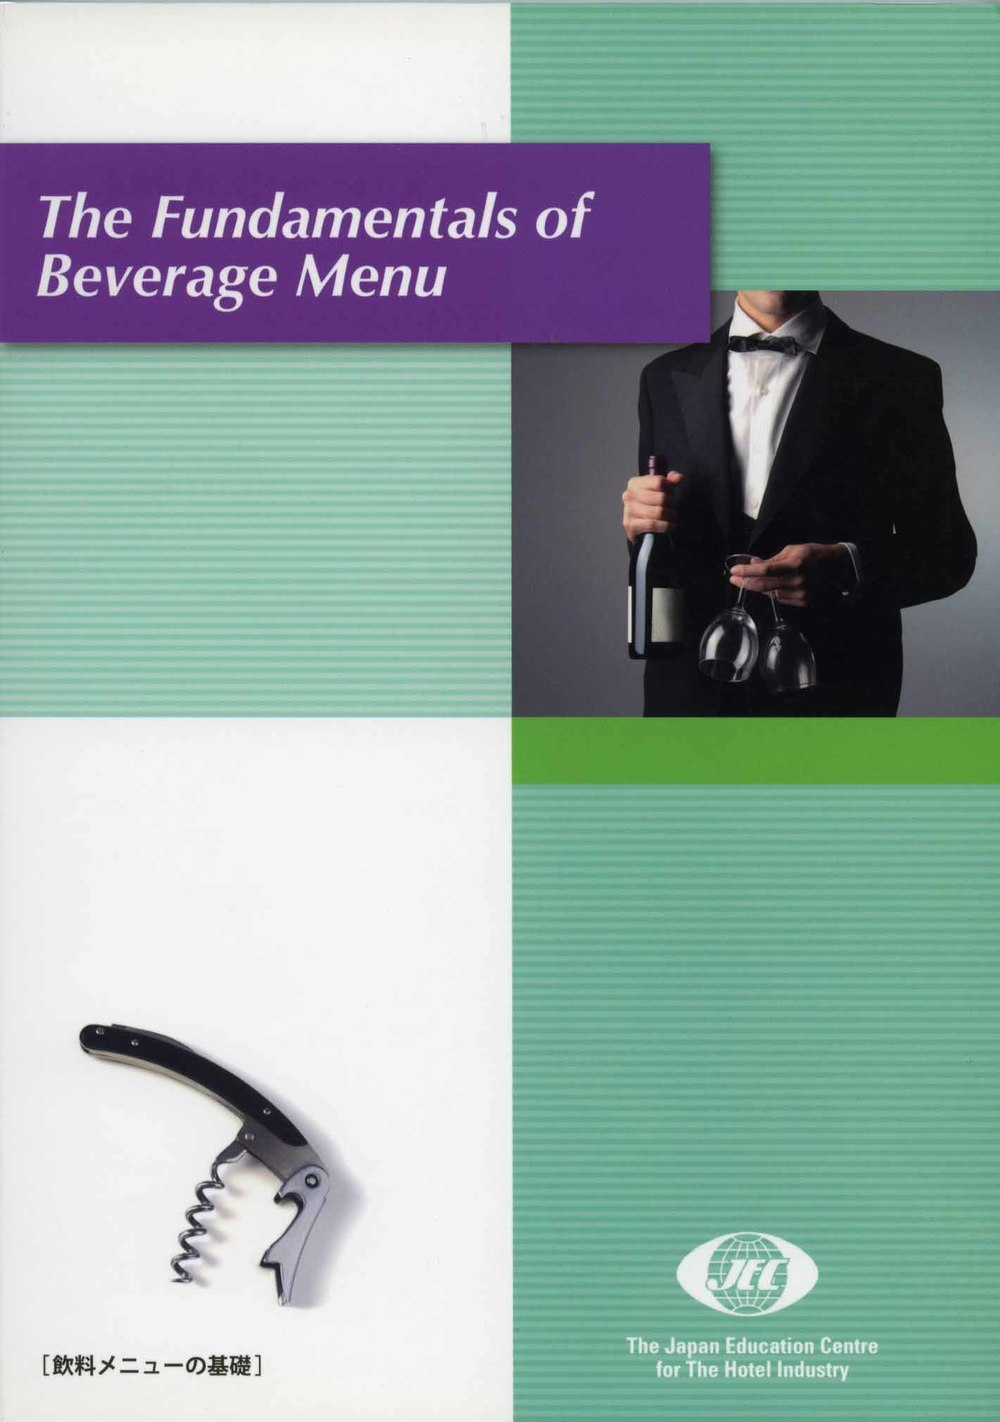 The Fundamentals of Beverage Menu 飲料メニューの基礎